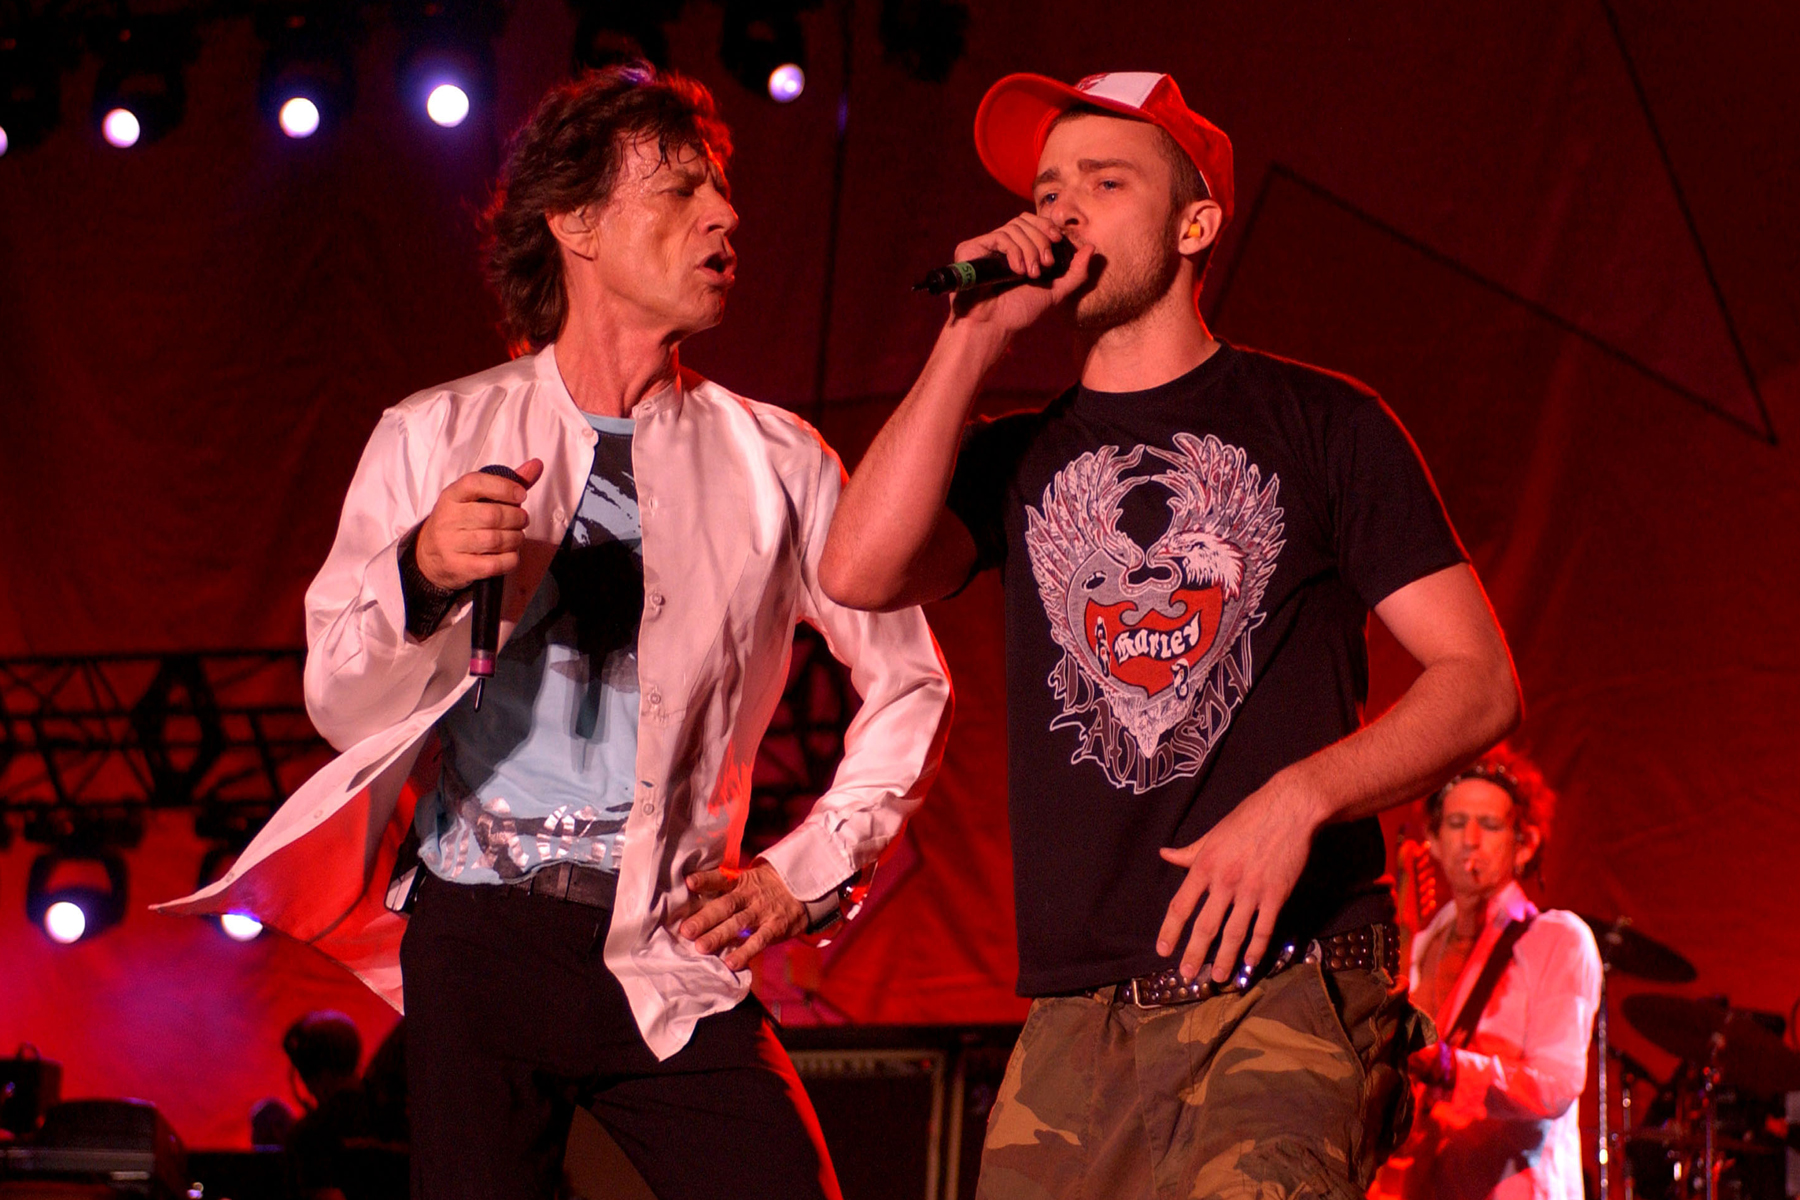 Flashback: The Rolling Stones and Justin Timberlake Battle SARS in 2003